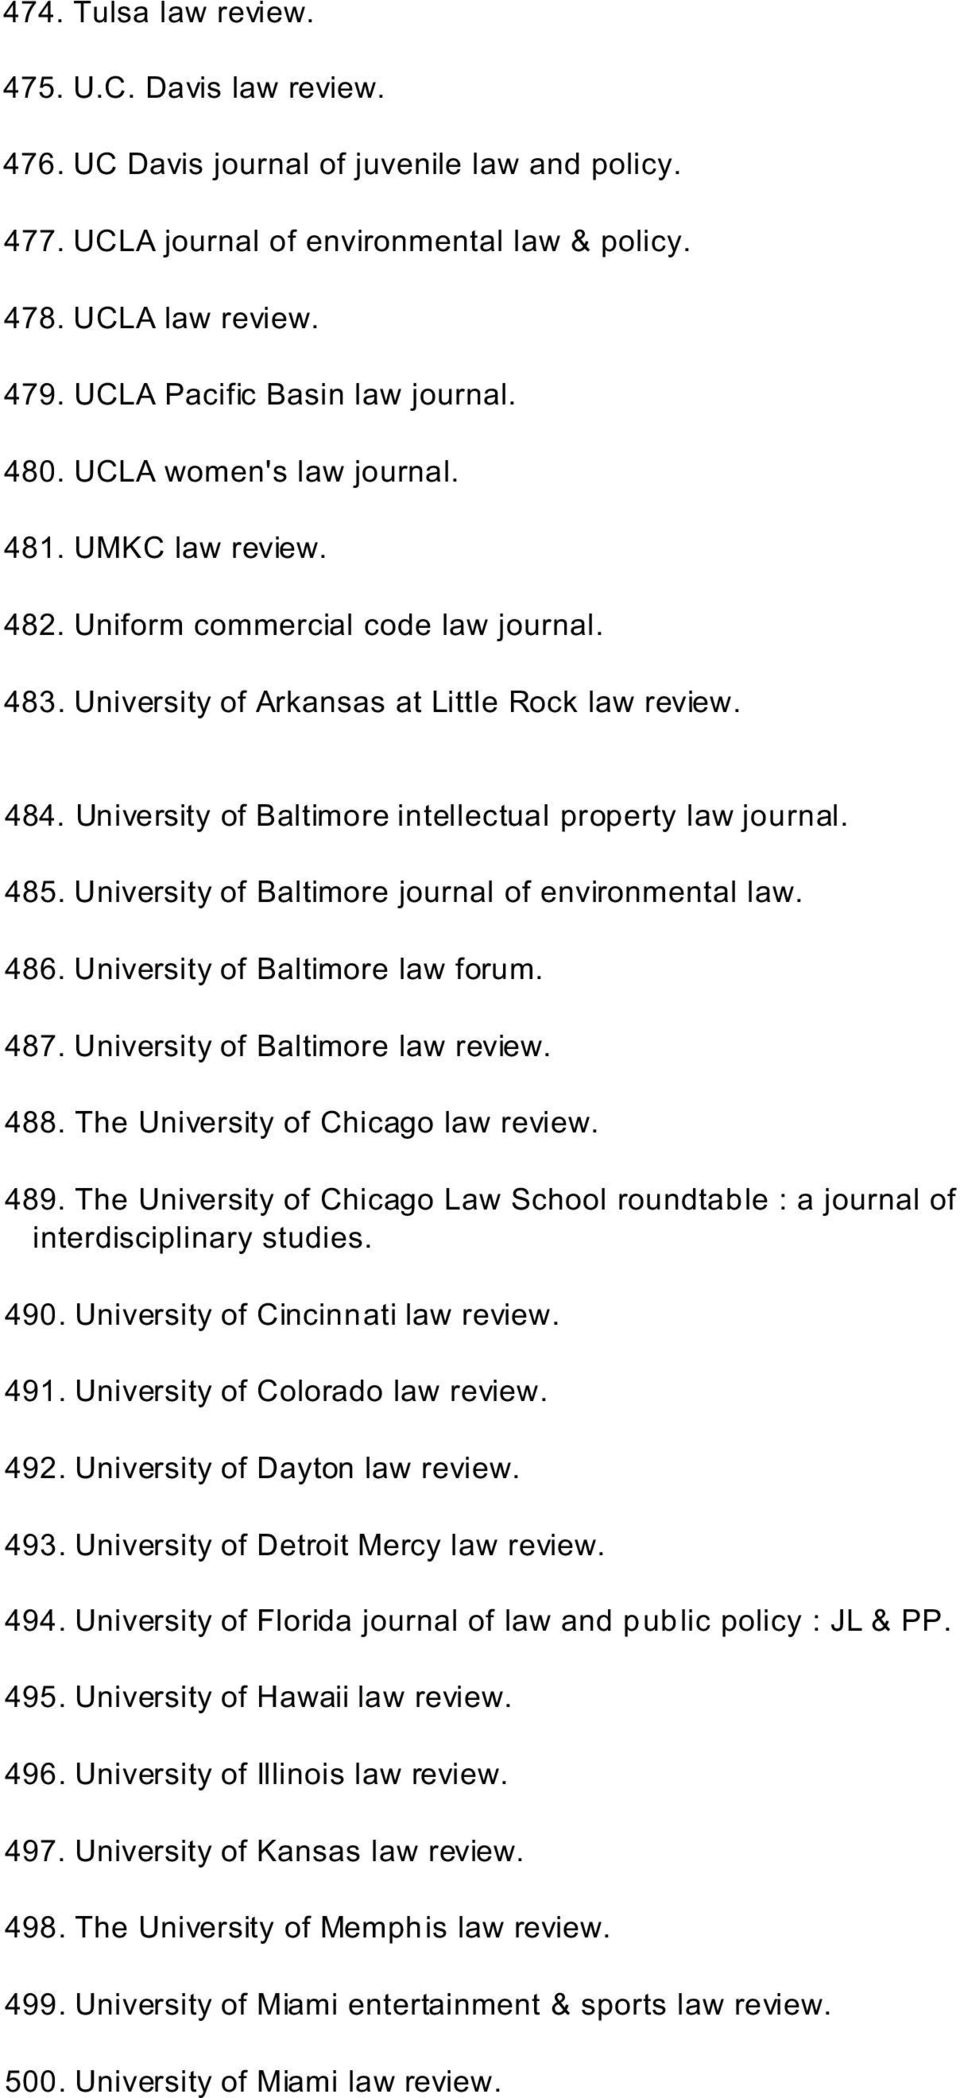 University of Baltimore intellectual property law journal. 485. University of Baltimore journal of environmental law. 486. University of Baltimore law forum. 487. University of Baltimore law review.